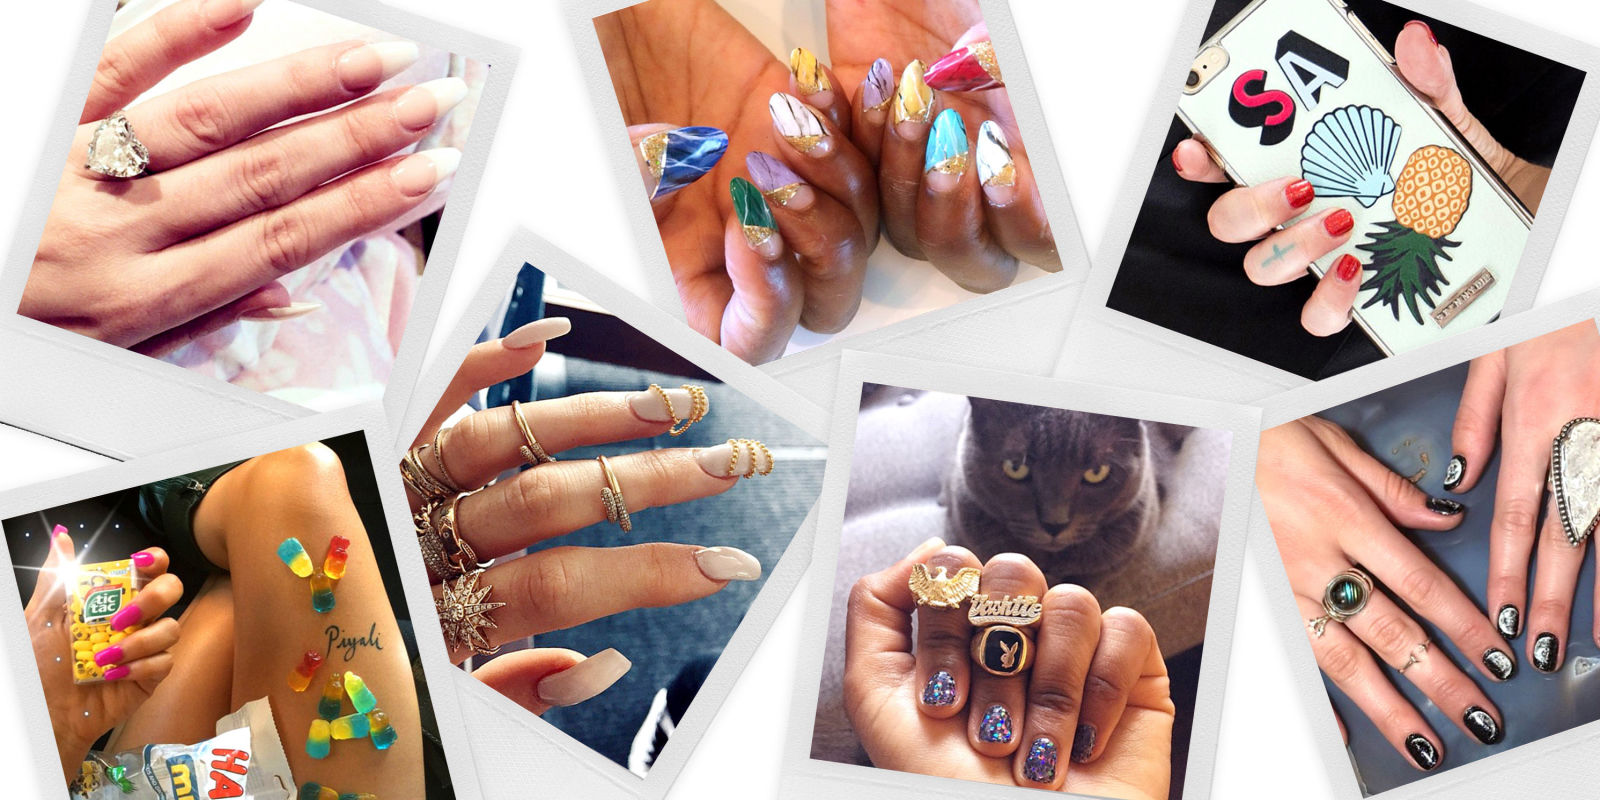 Celebrities with acrylic nails 2015